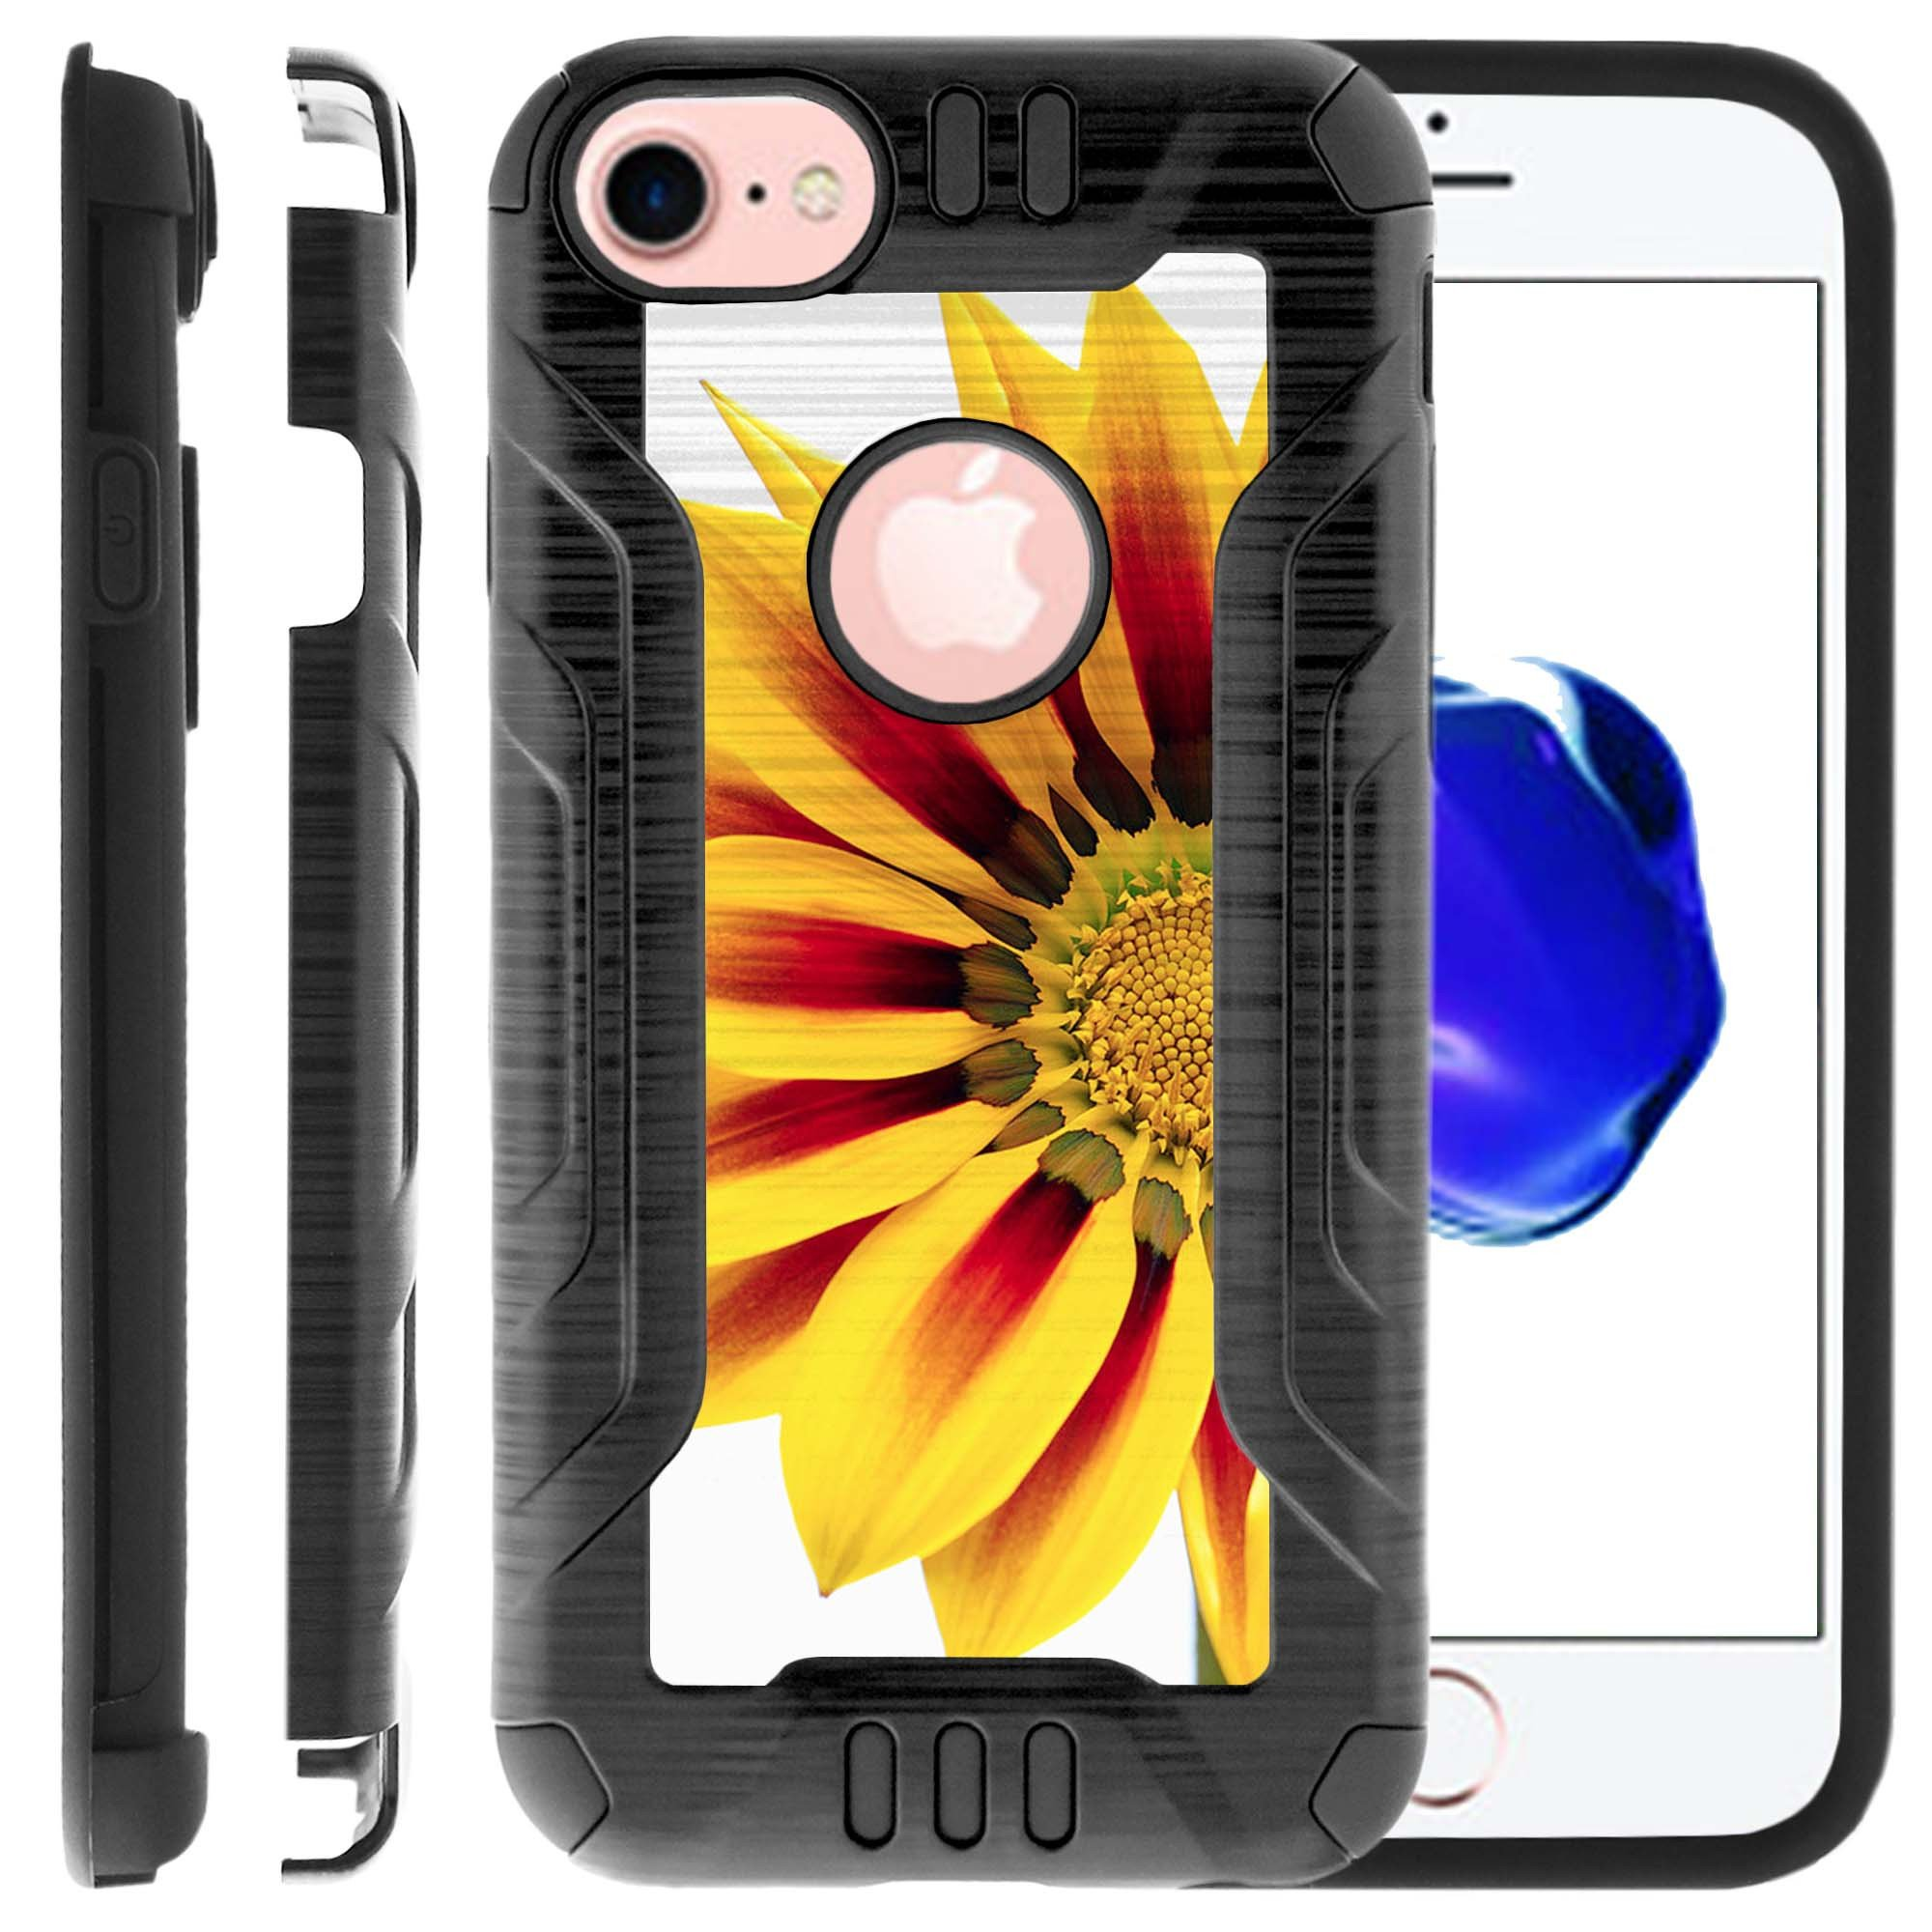 Apple iPhone 6 | 6s Phone Case, Dual Layer Case for iPhone 6 [PRO-Tech Series] Rigid Hard Plastic Shell TPU Bumper Corners with Design by MINITURTLE - Vivid Sunflower